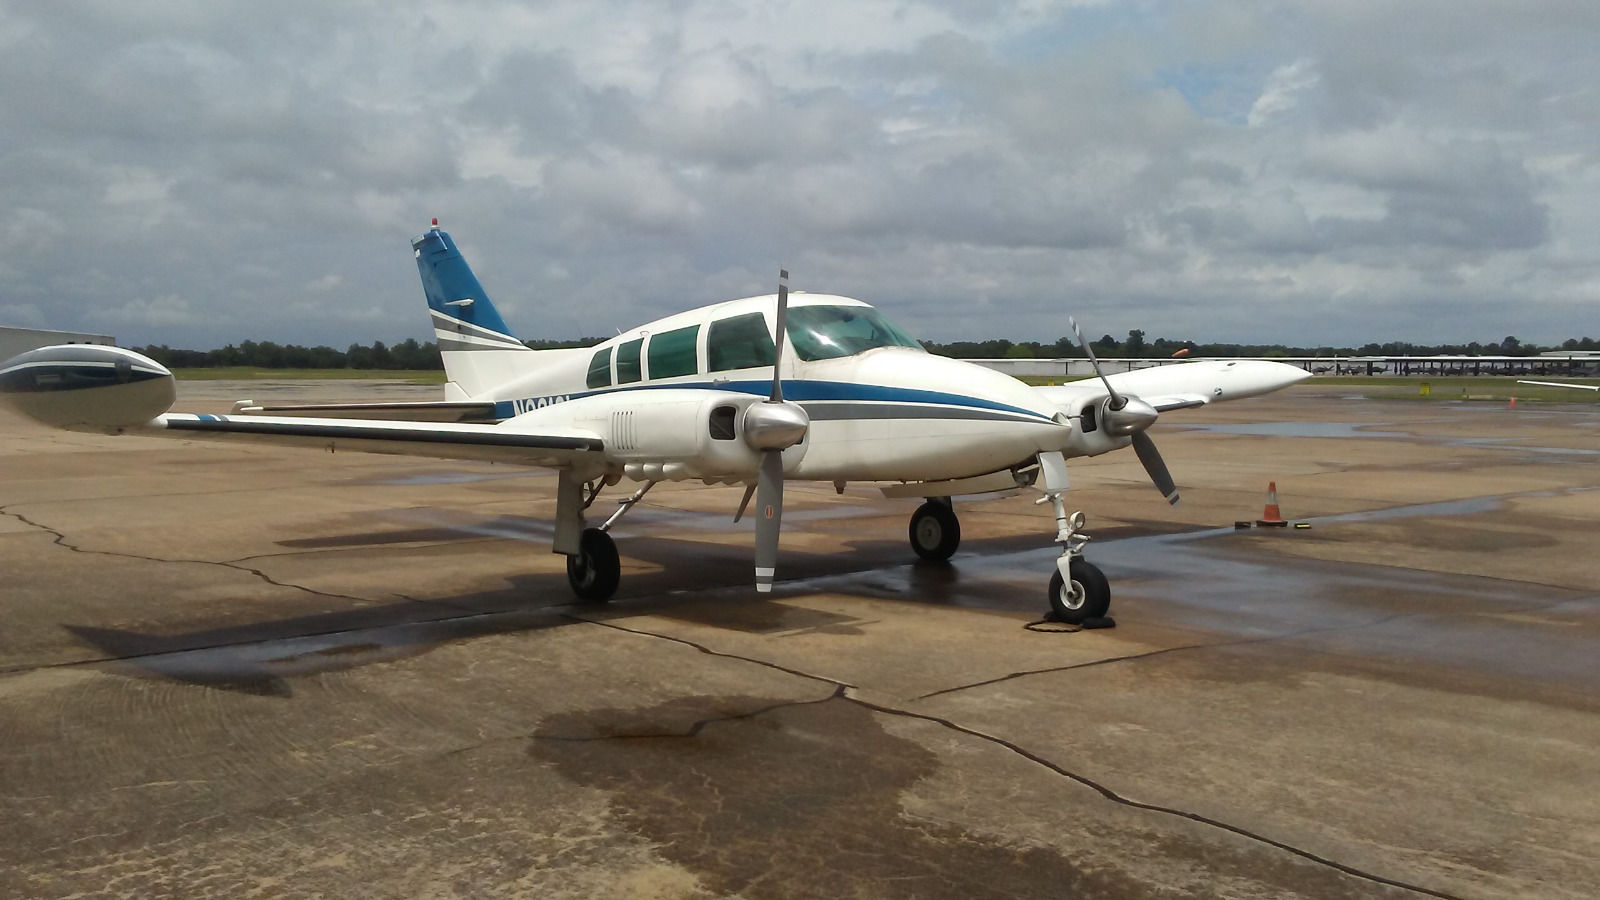 Traffic Light For Sale >> Great condition 1963 Cessna 320 aircraft for sale